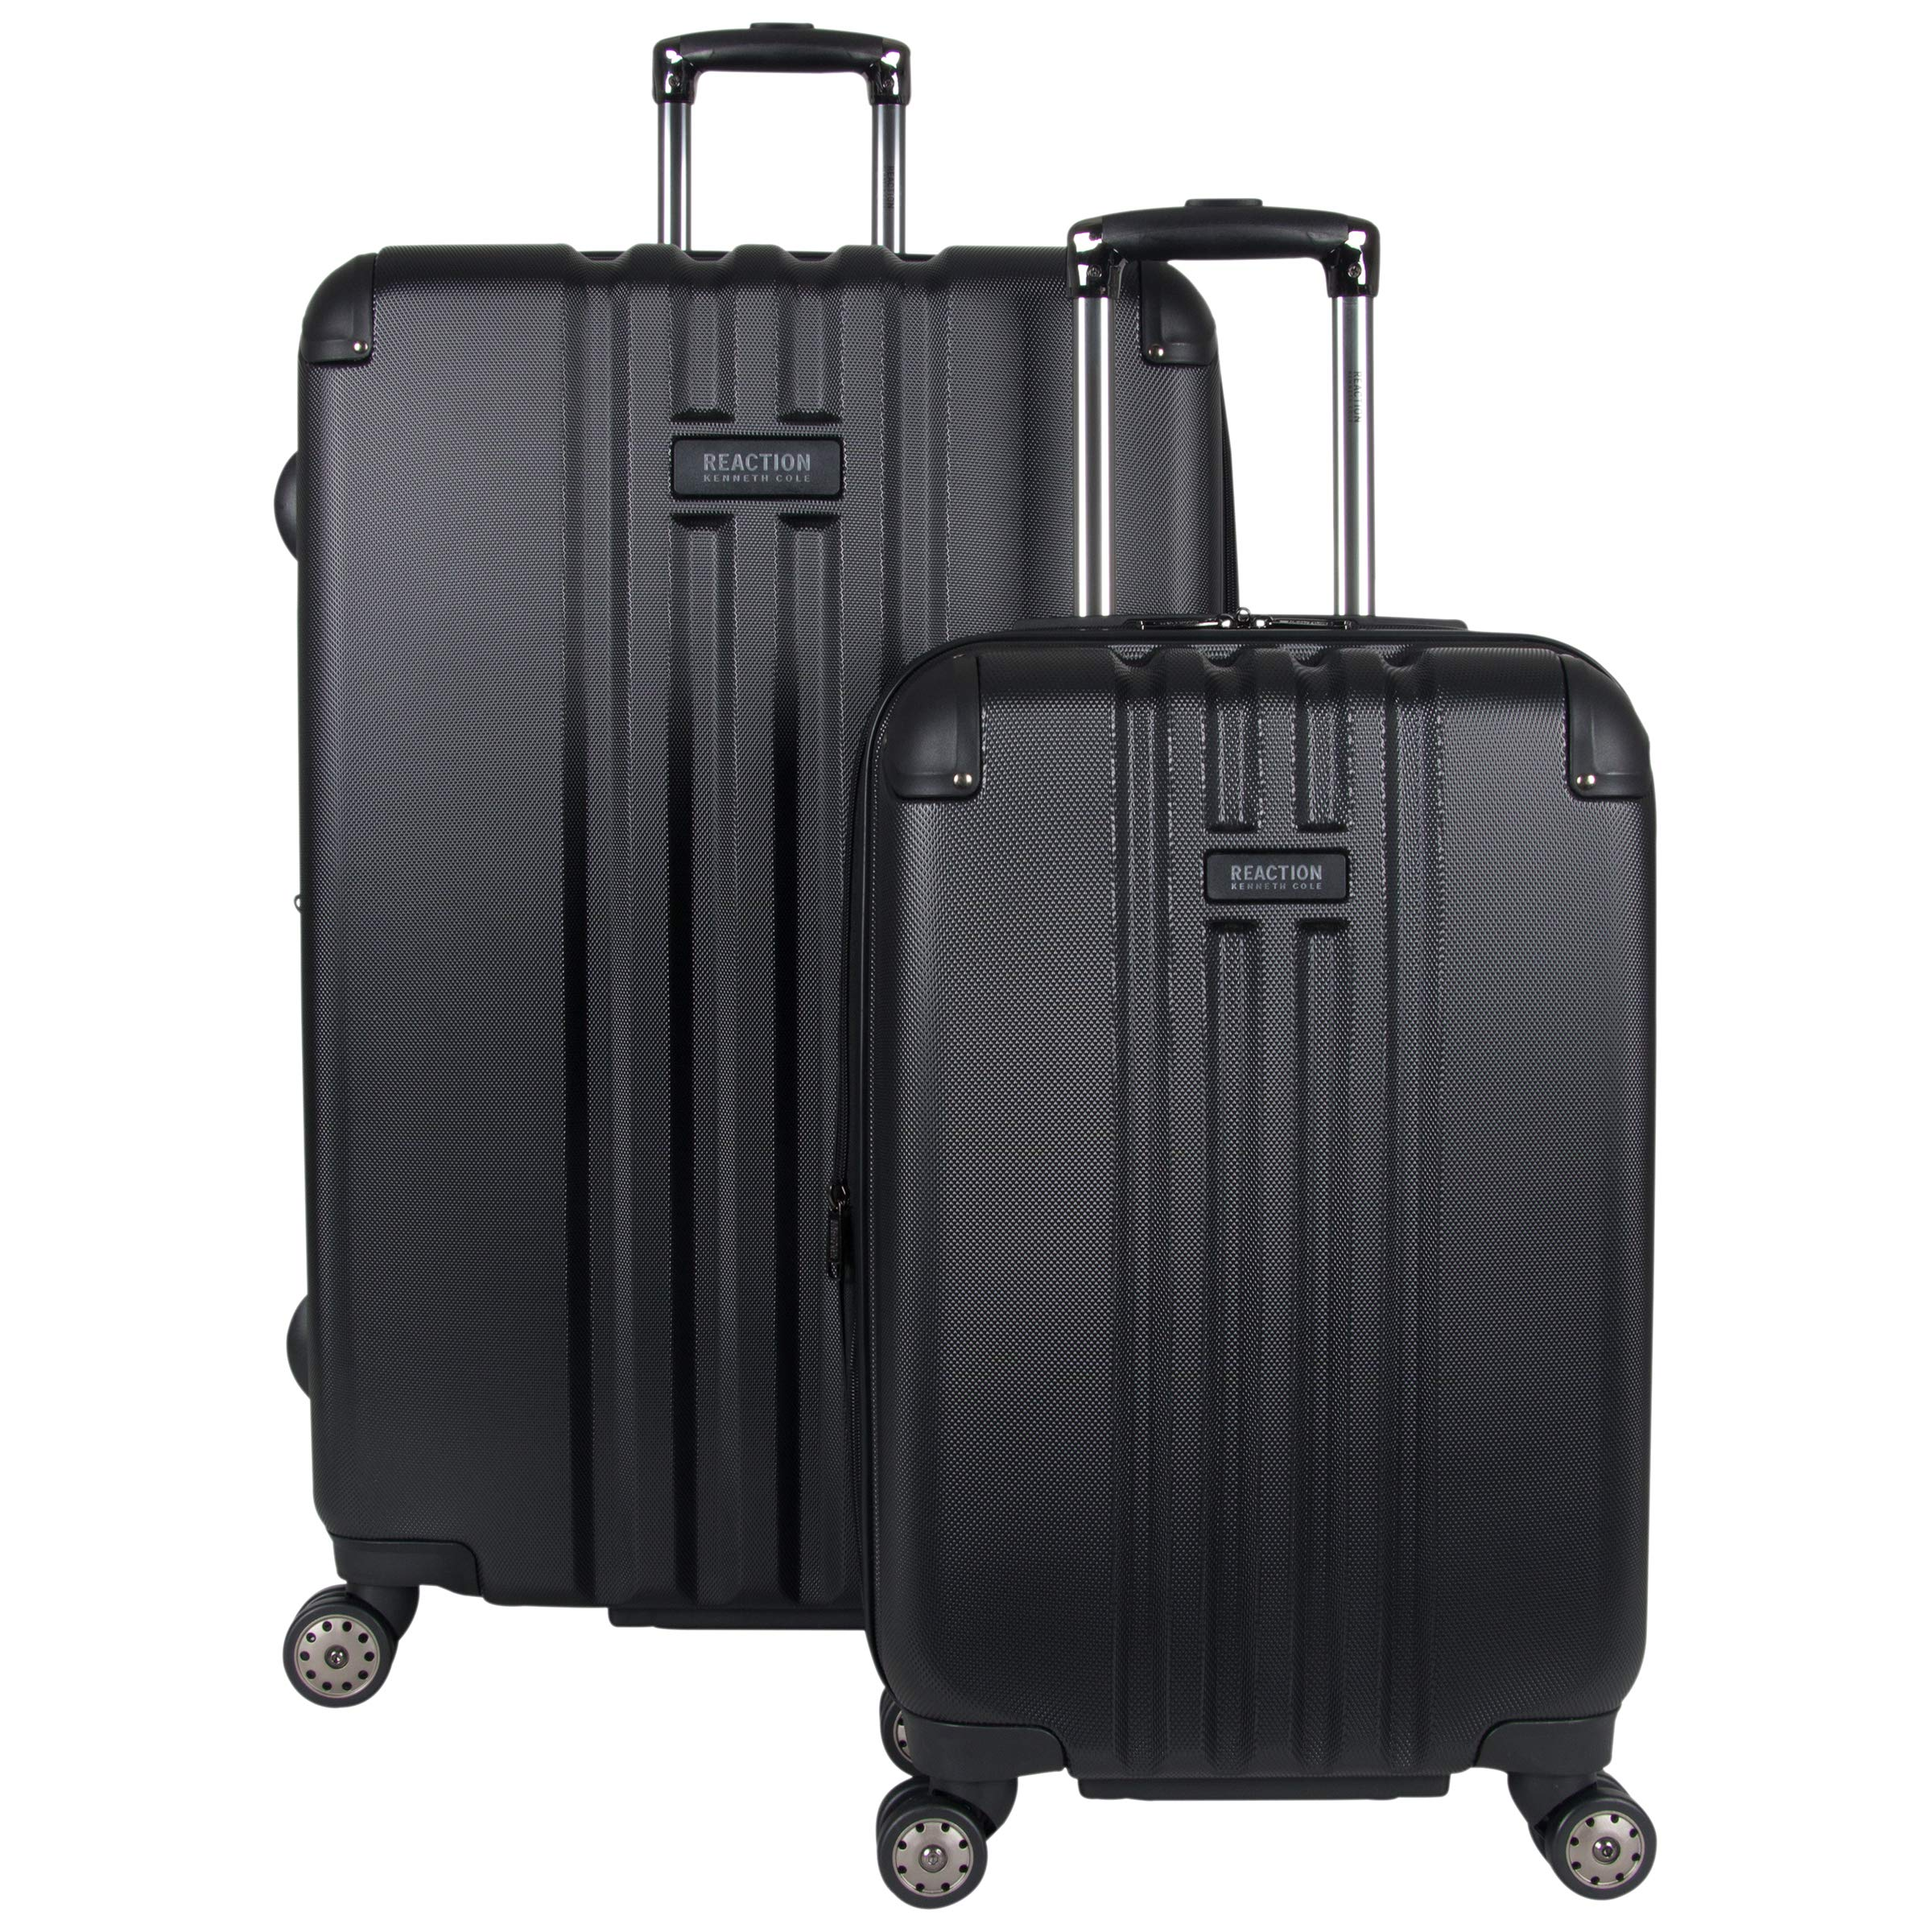 Kenneth Cole Reaction Reverb 2-Piece Luggage Set 20'', 29'', Black